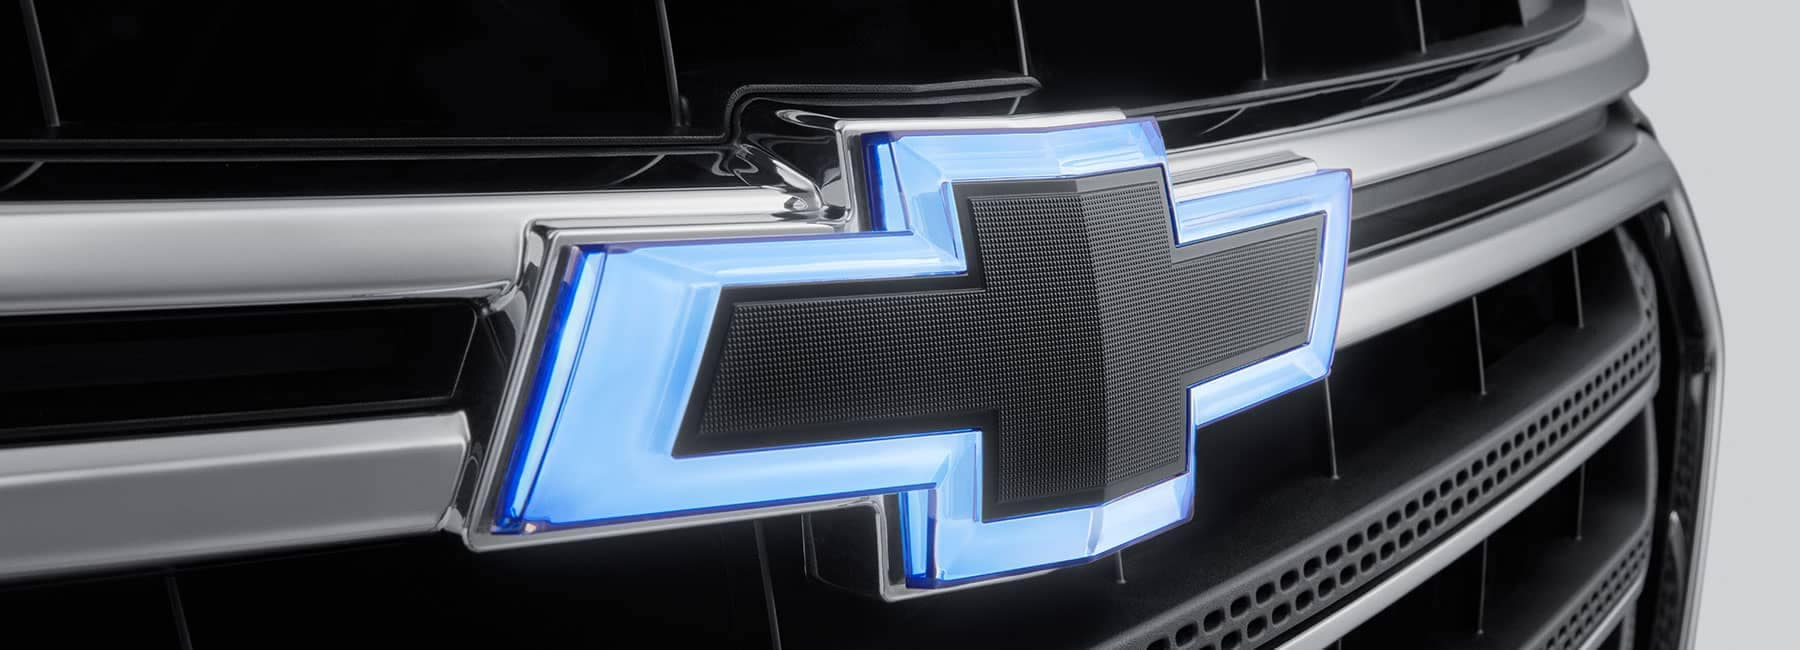 Blue chevy logo on grill